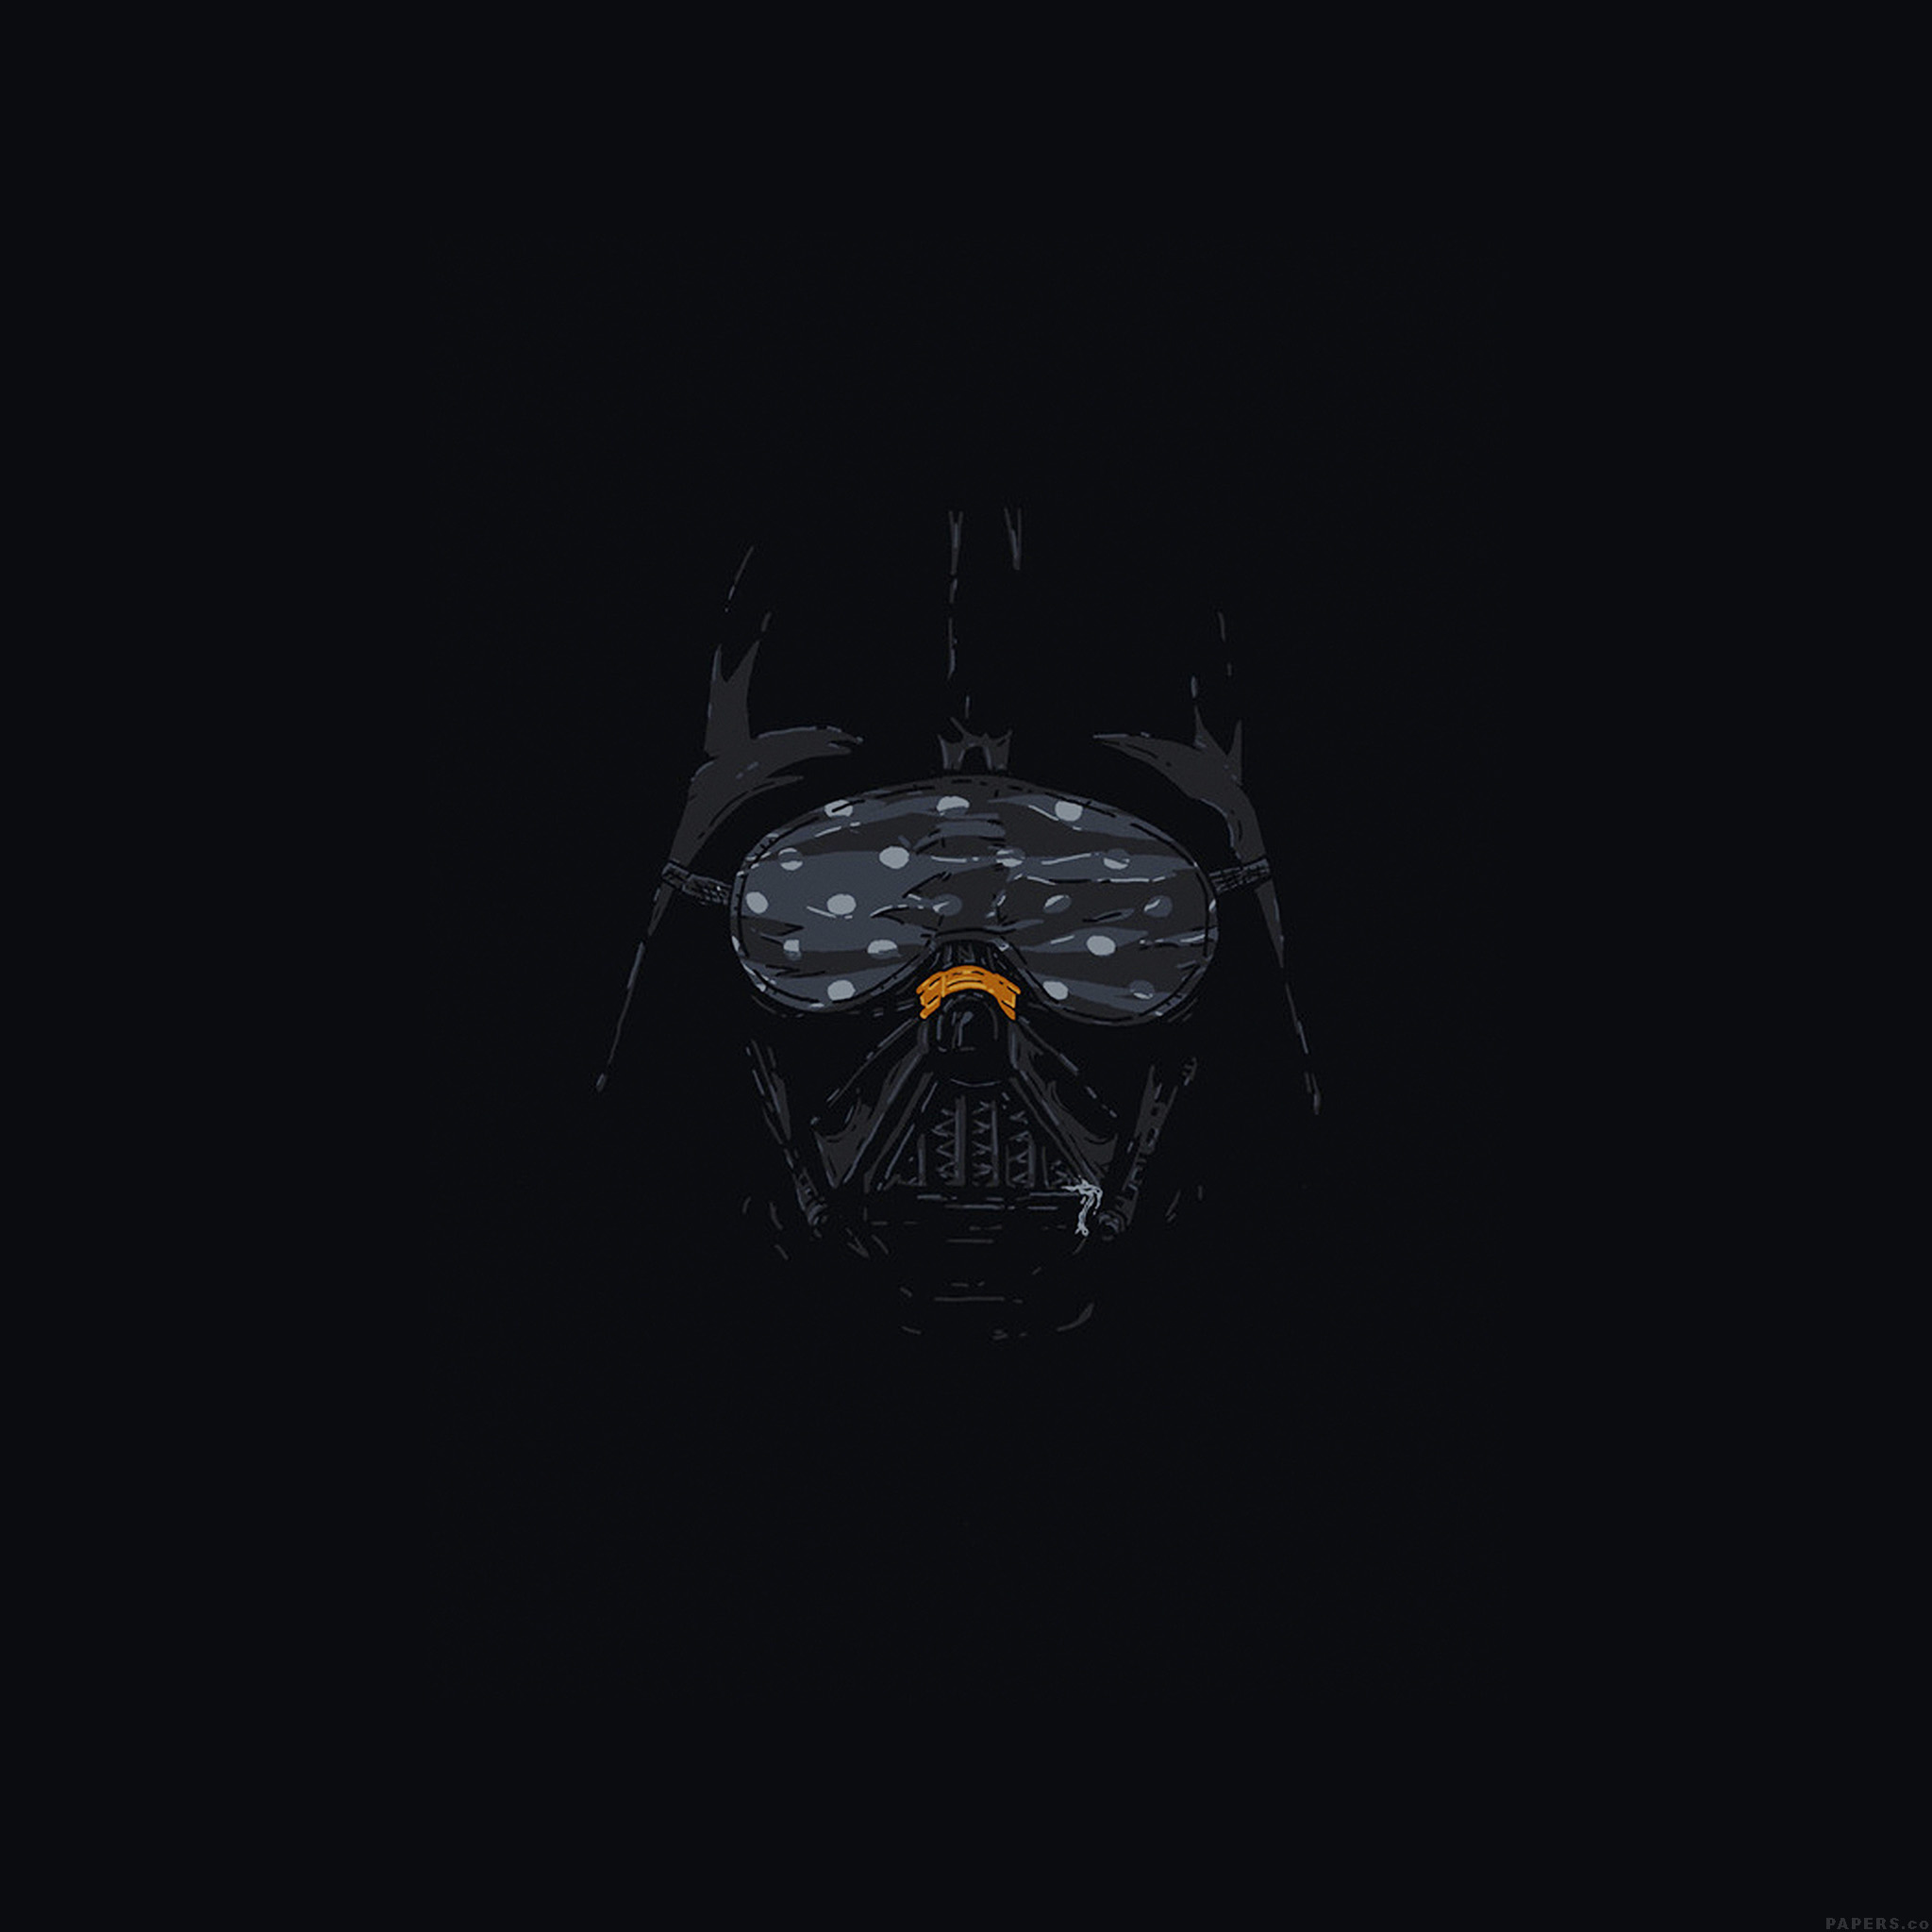 Ah87-darth-vader-minimal-starwars-illust-art